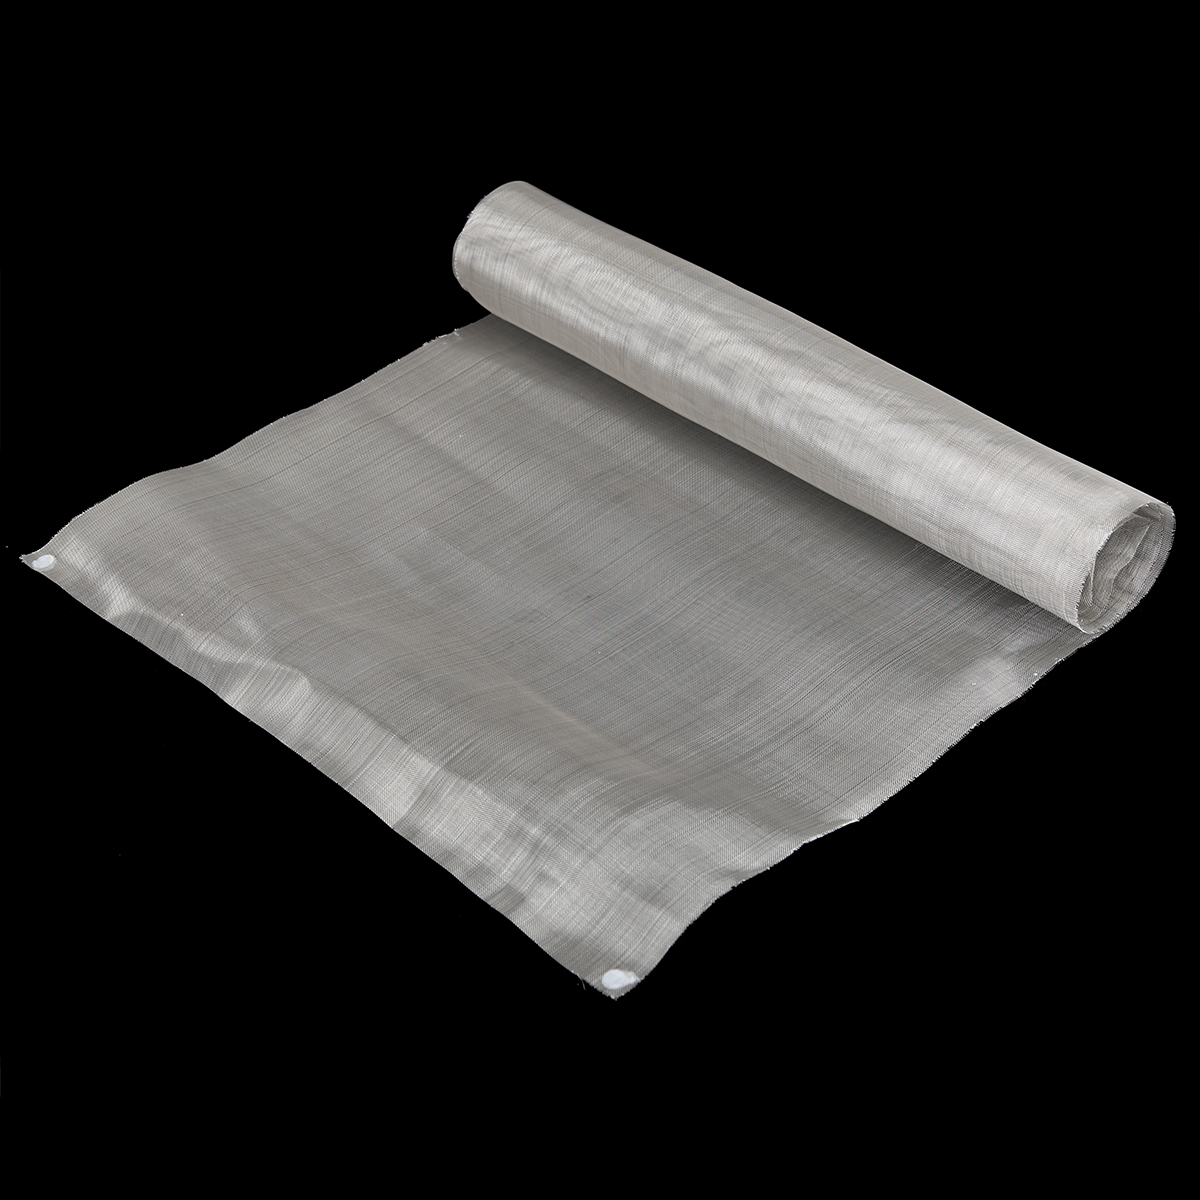 500 Mesh 304 Stainless Steel Woven Wire Mesh Filter Cloth Sheet 40cm X 90cm